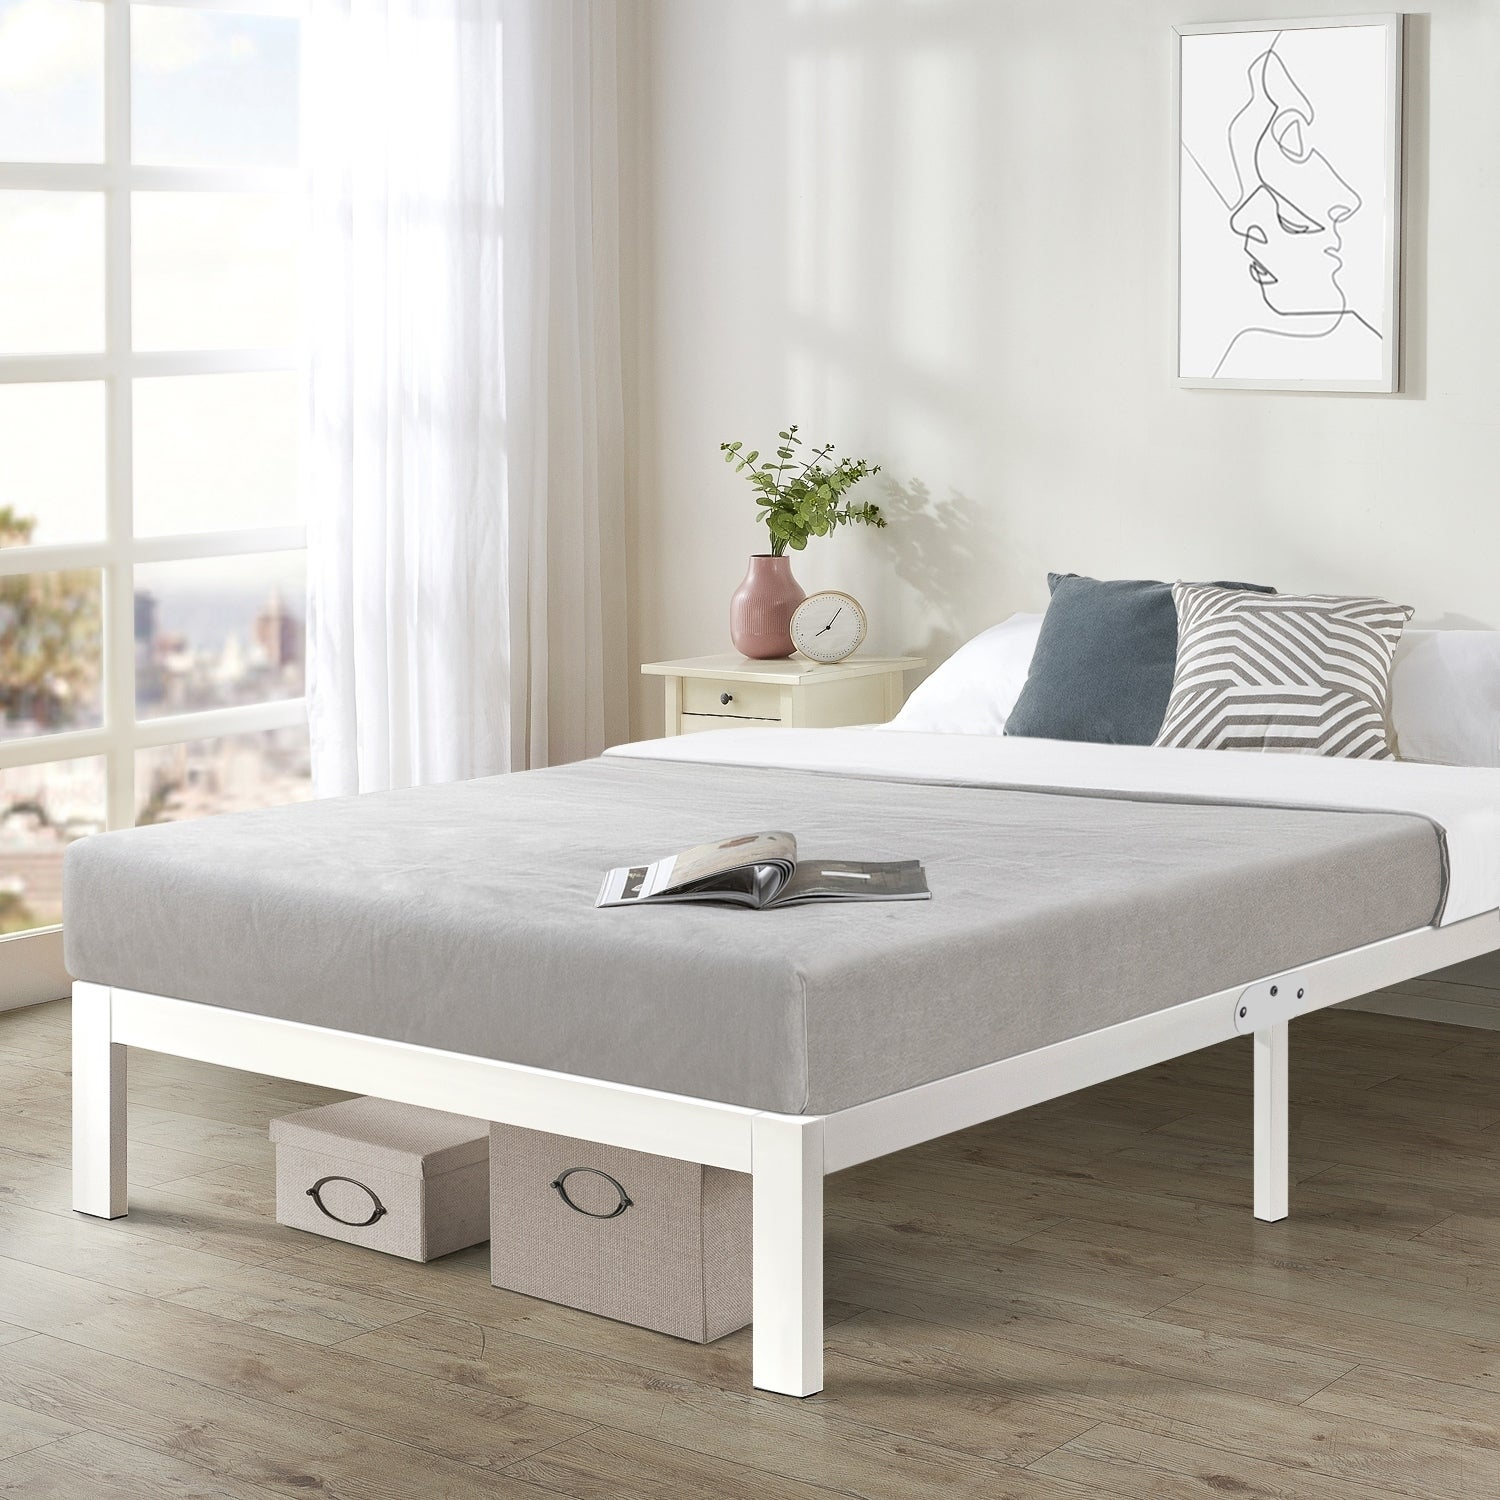 Picture of: Shop Black Friday Deals On King Size Heavy Duty Bed Frame Steel Slat Platform Series Titan E White Crown Comfort Overstock 20859079